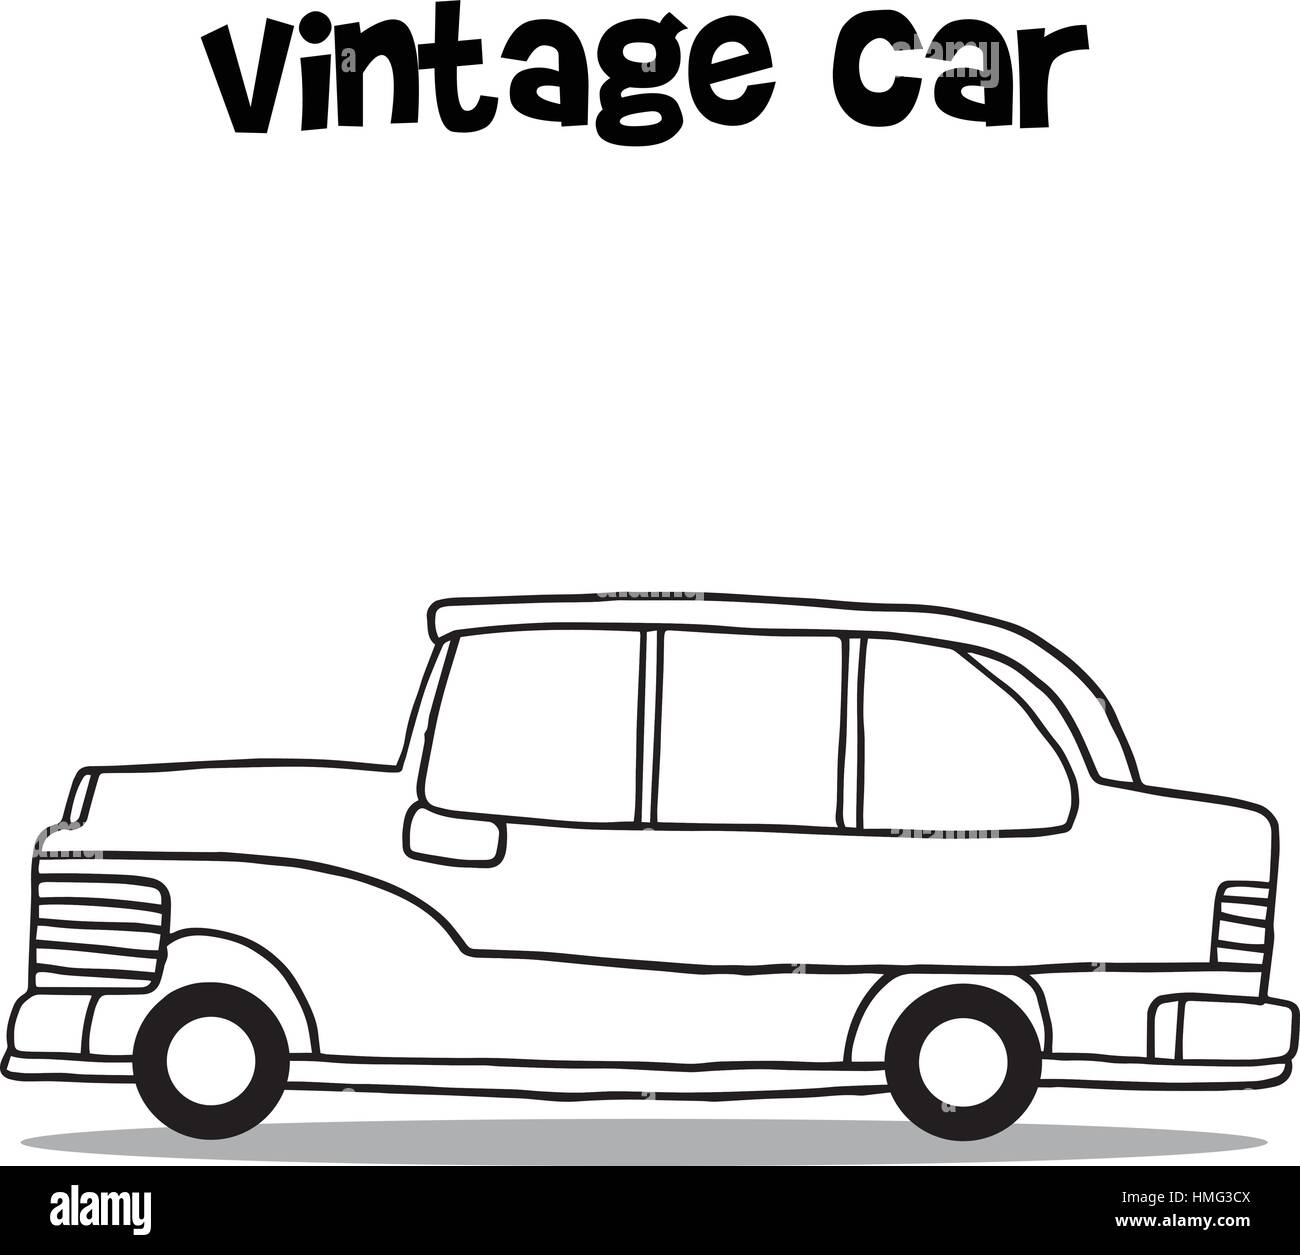 Vintage car with hand draw - Stock Vector